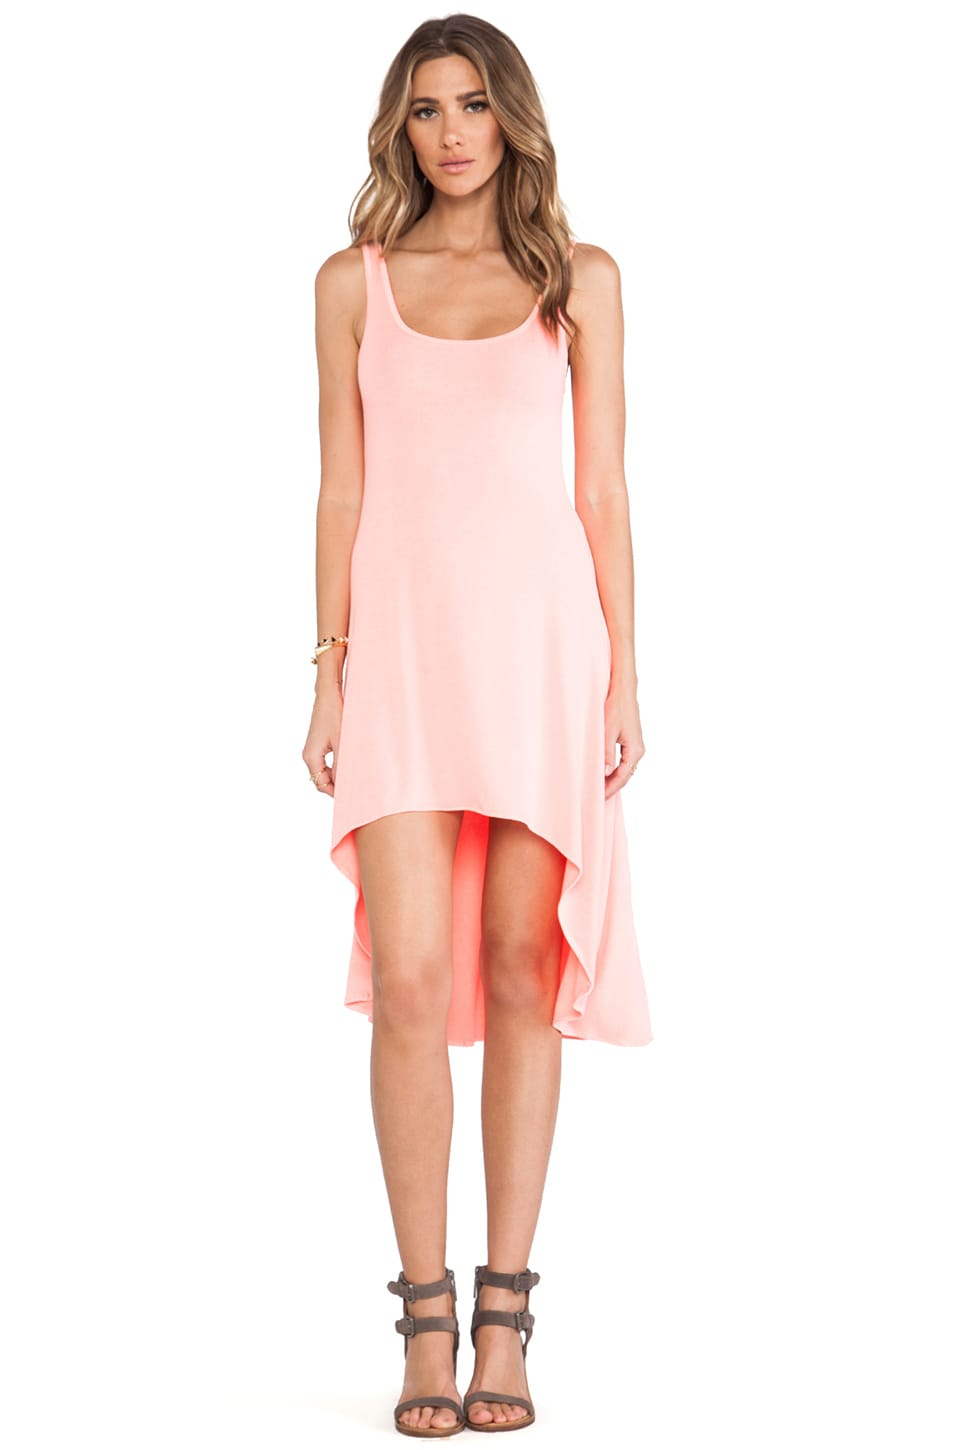 Feel the Piece Hi Low Dress in Neon Coral